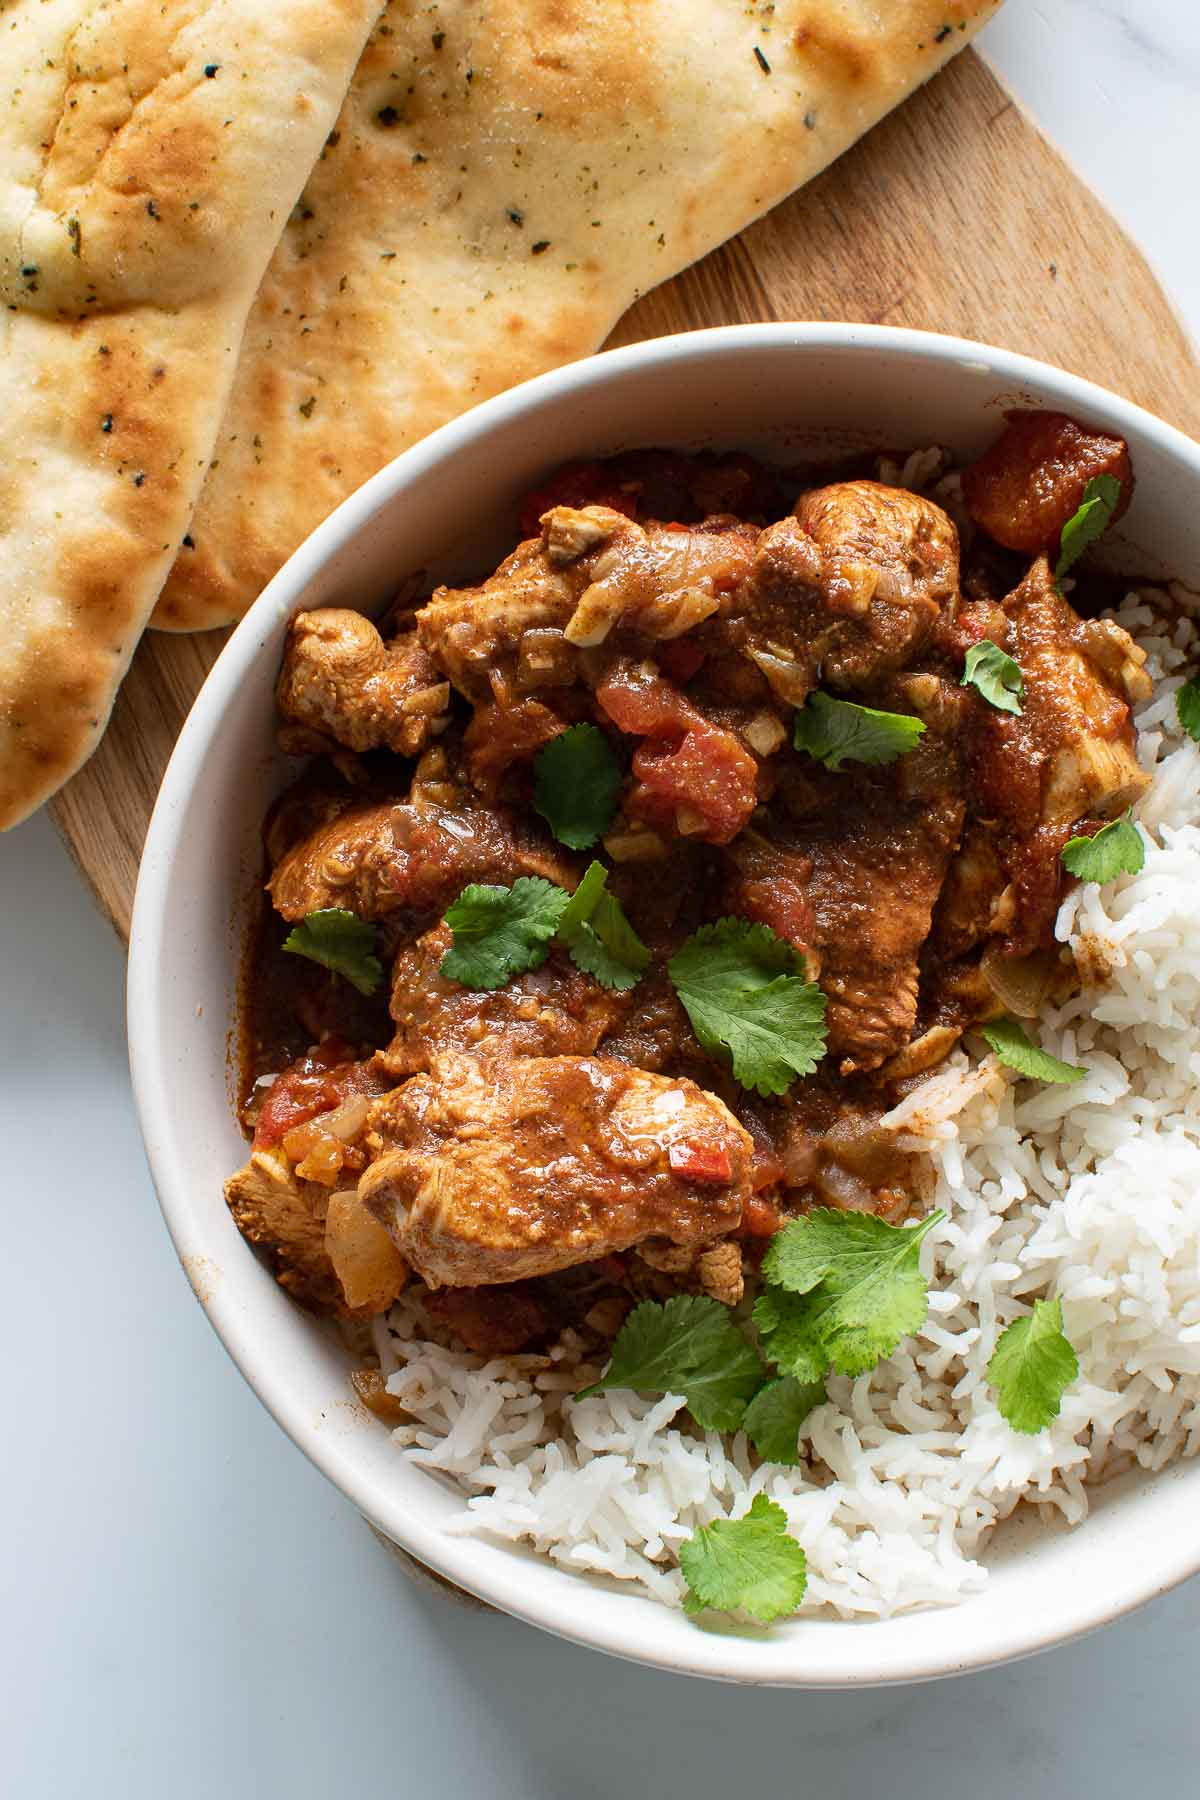 Chicken curry and rice in a bowl, with naan in the background.